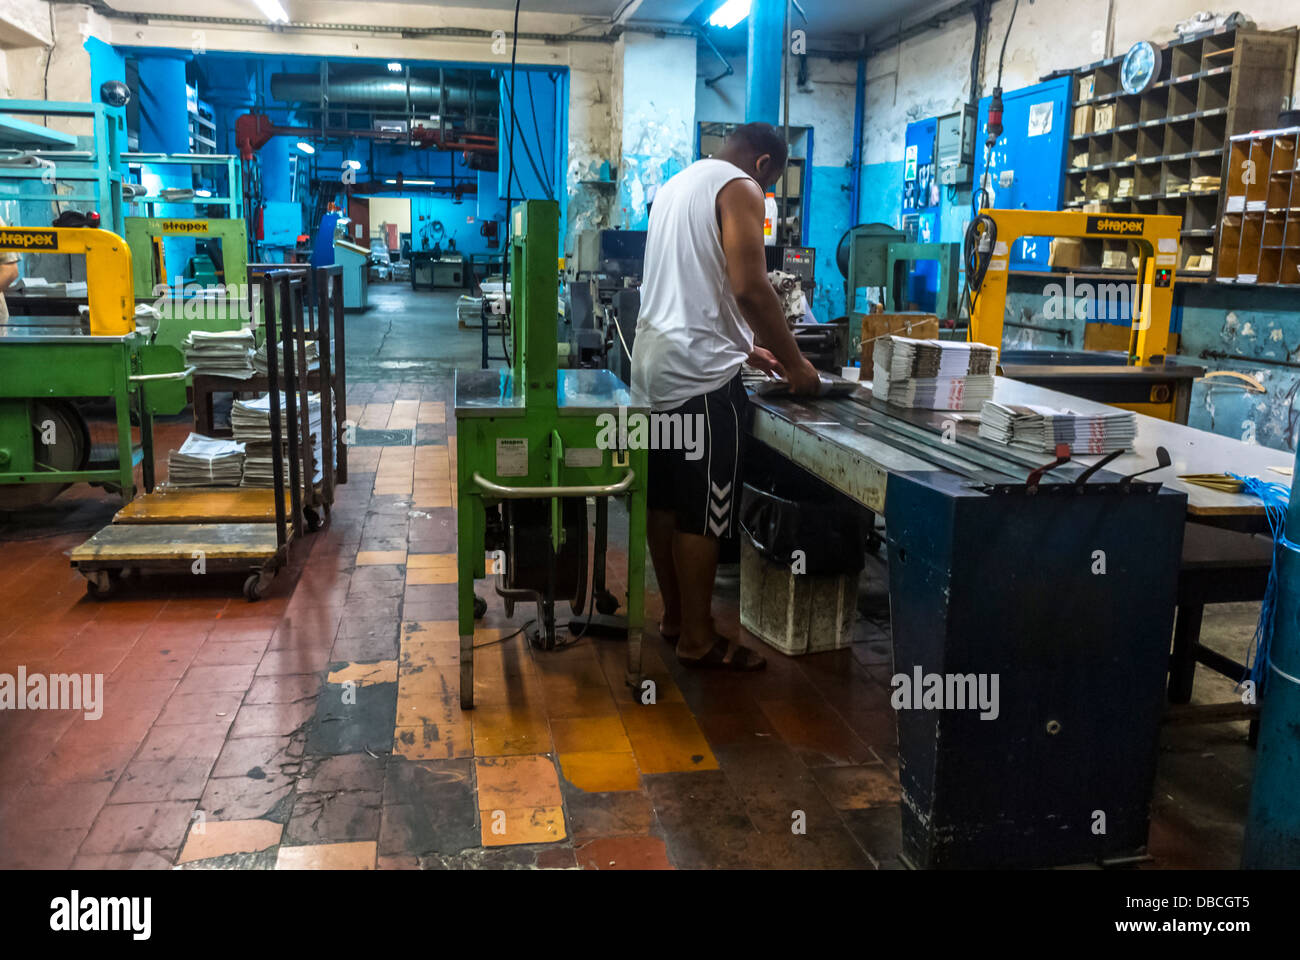 Marseille, France, Workers inside Newspaper Printing Factory in Center City 'La Marseillaise' - Stock Image